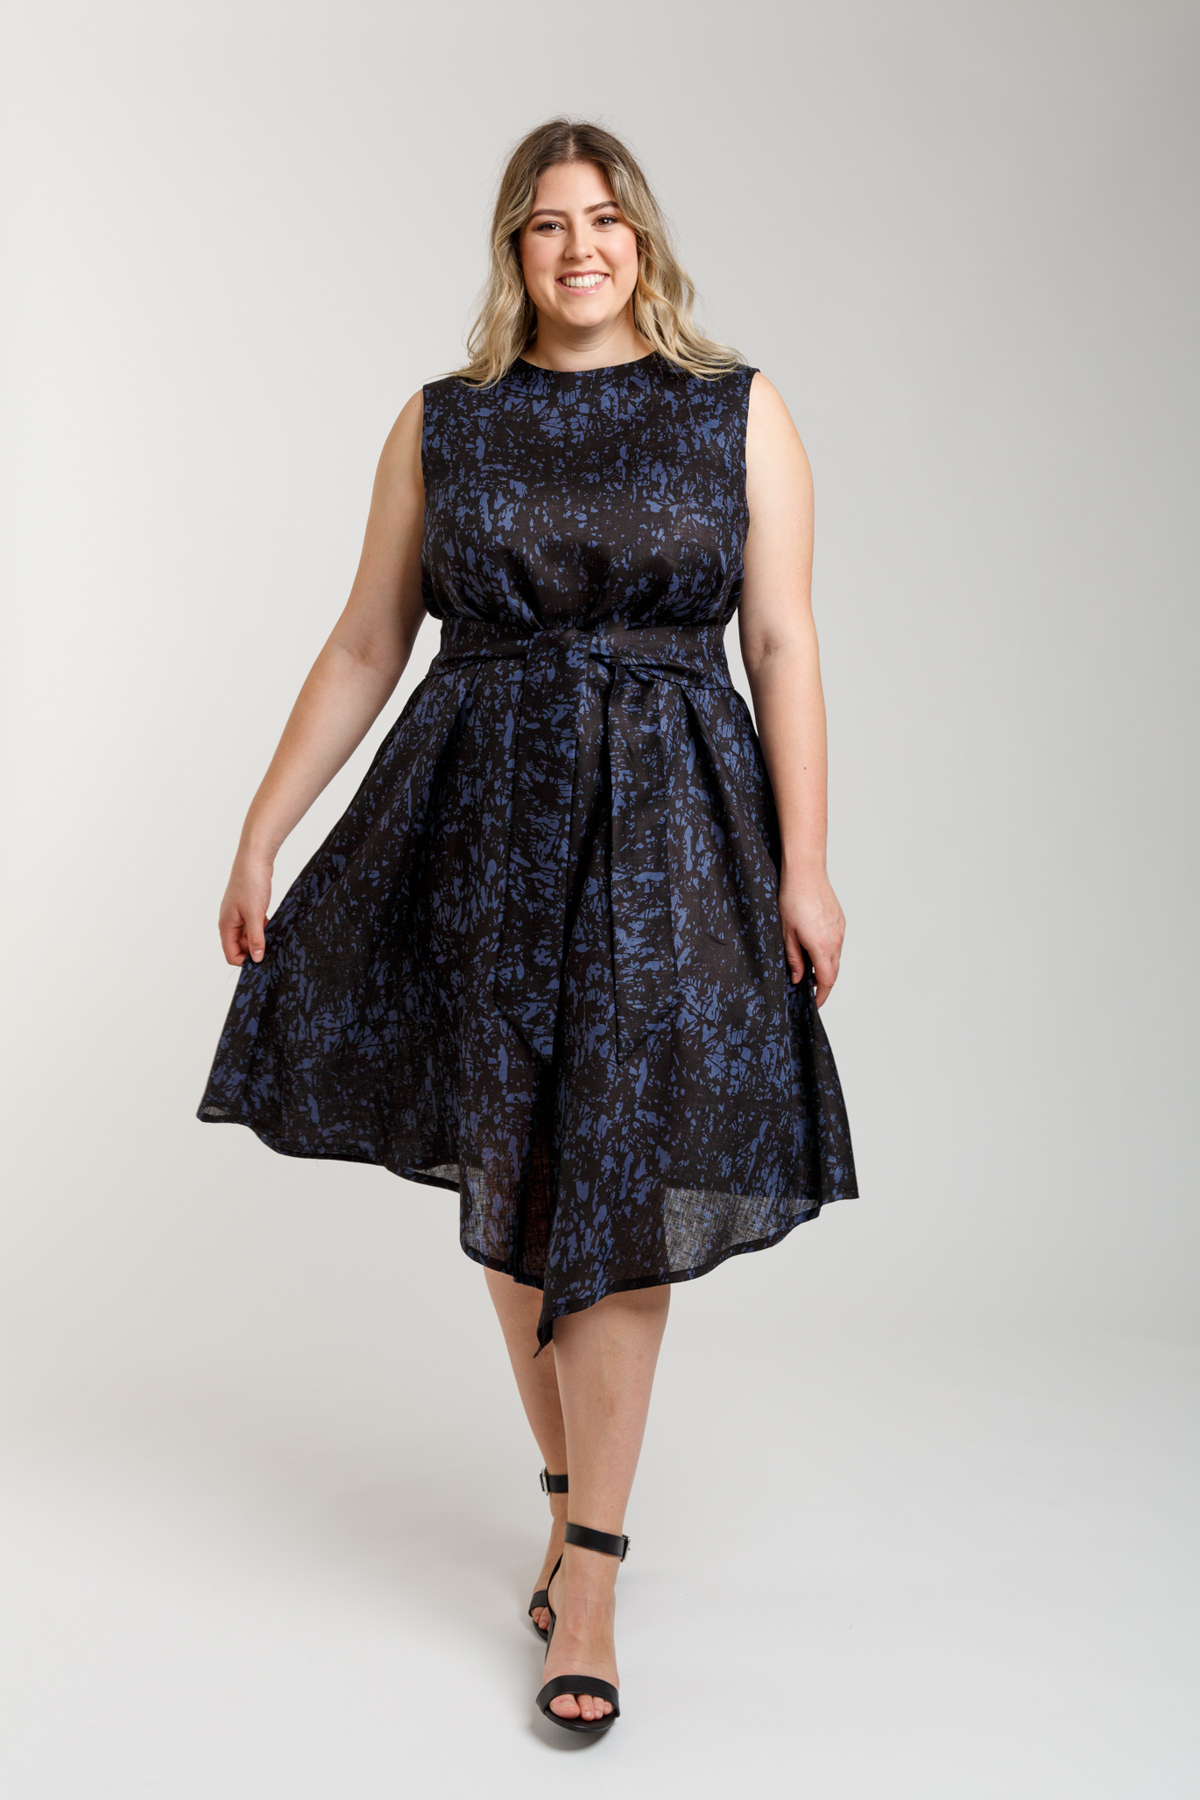 Megan Nielsen Curve Floreat dress